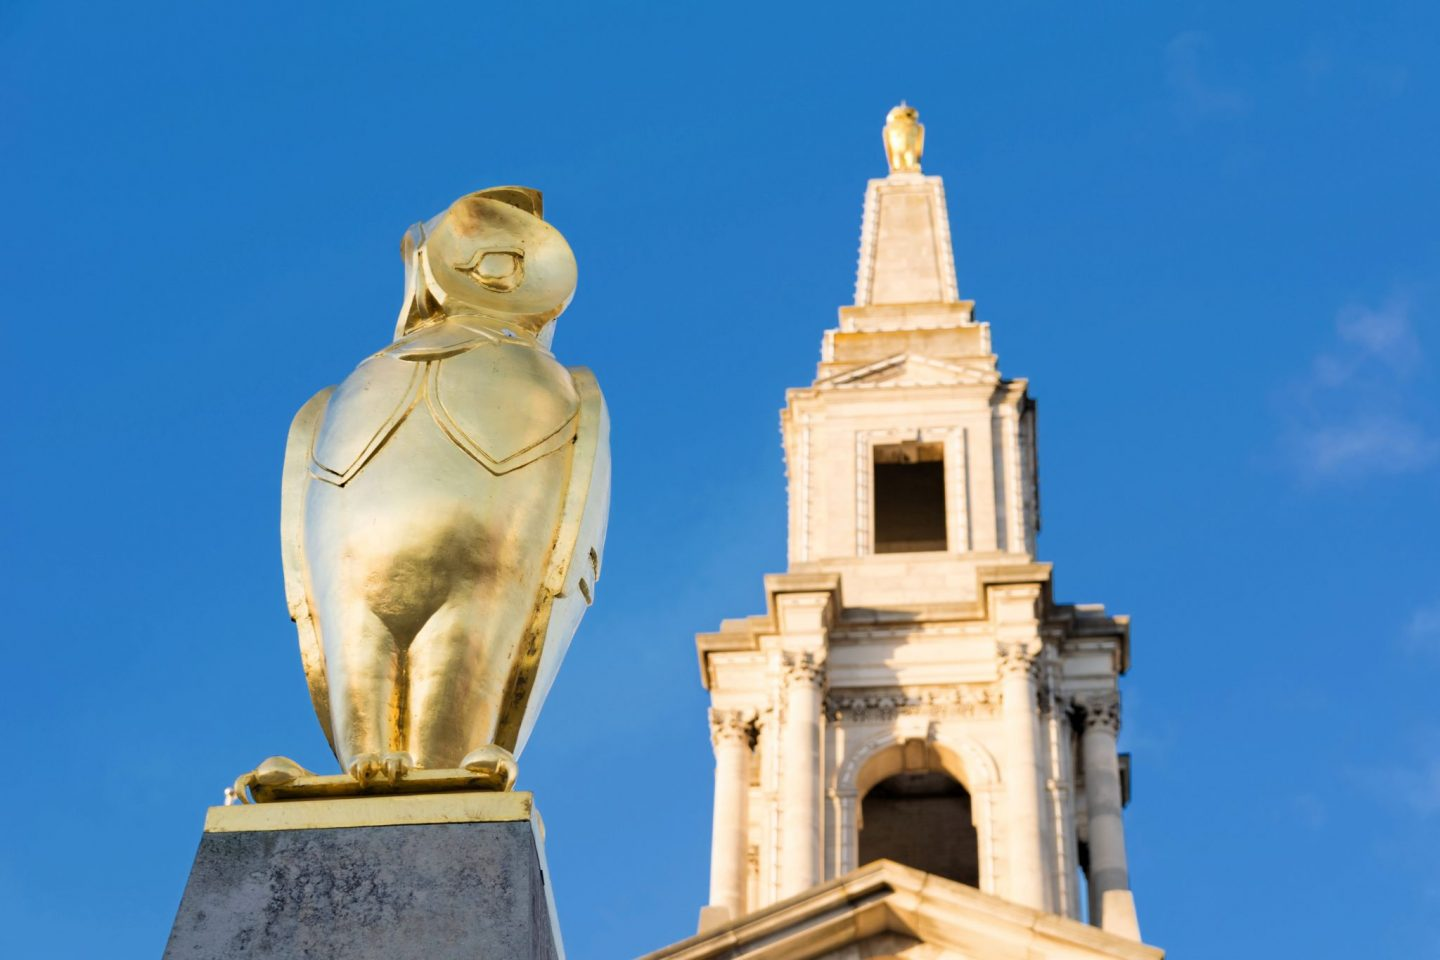 A golden owl statue against a bright blue sky, things to do in Leeds